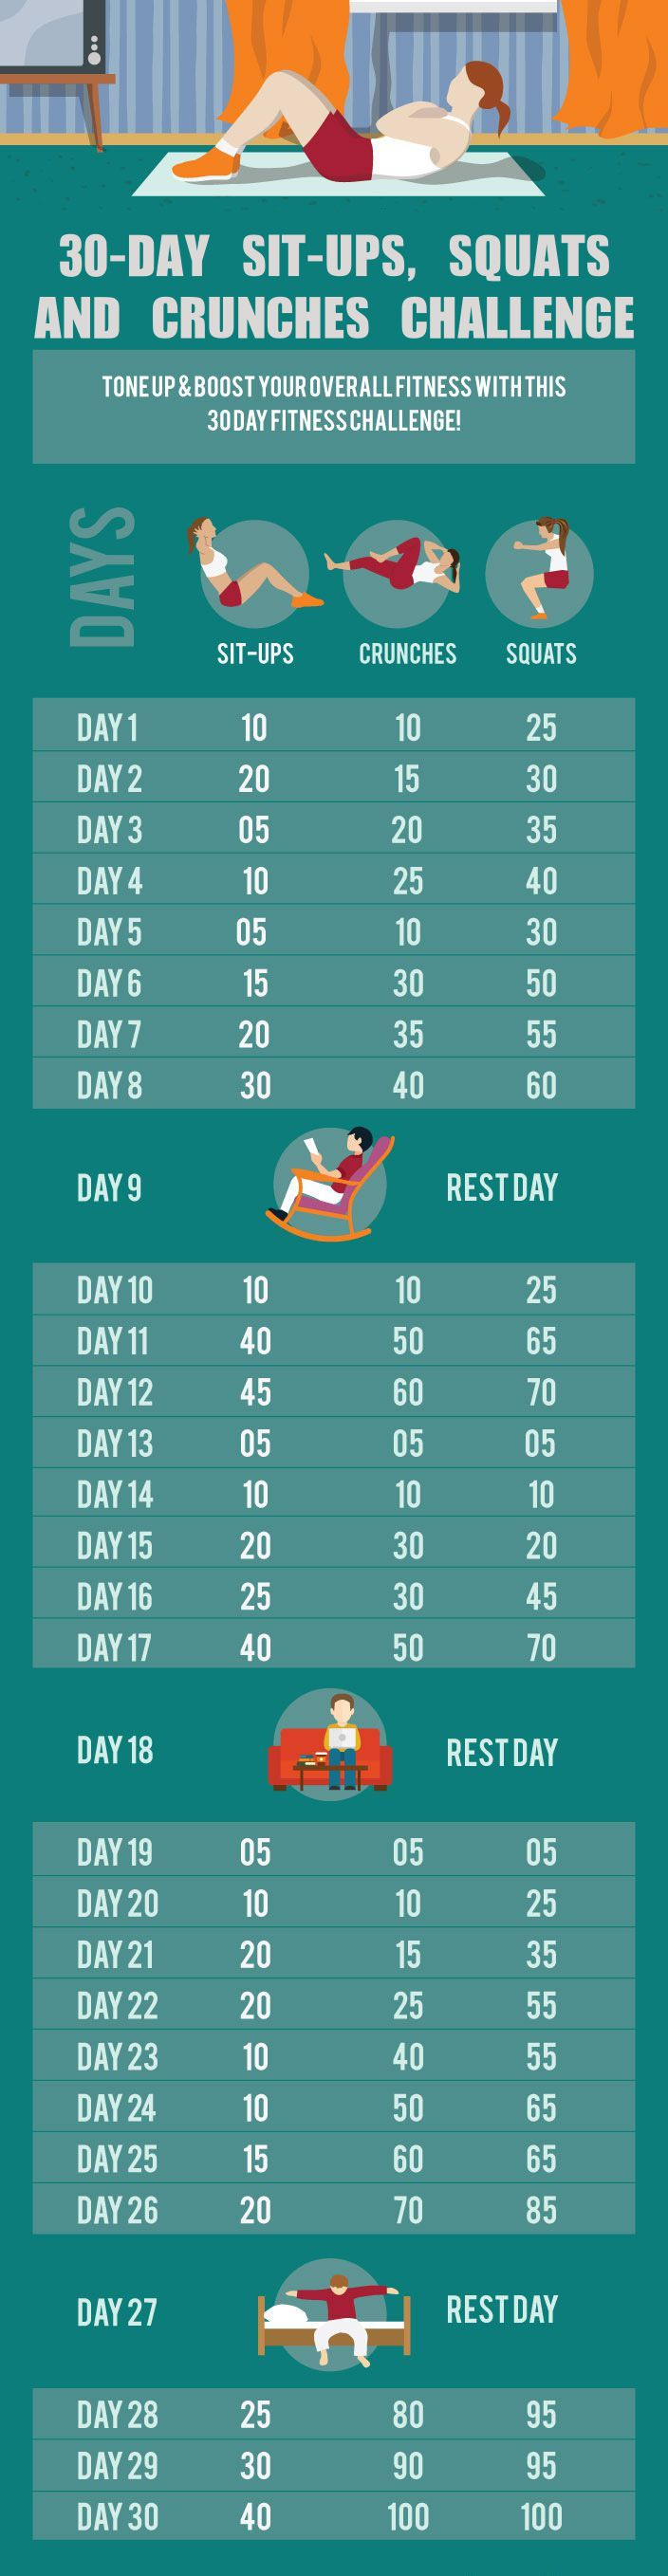 30-Day Sit-ups, Squats, And Crunches Challenge - Fitneass